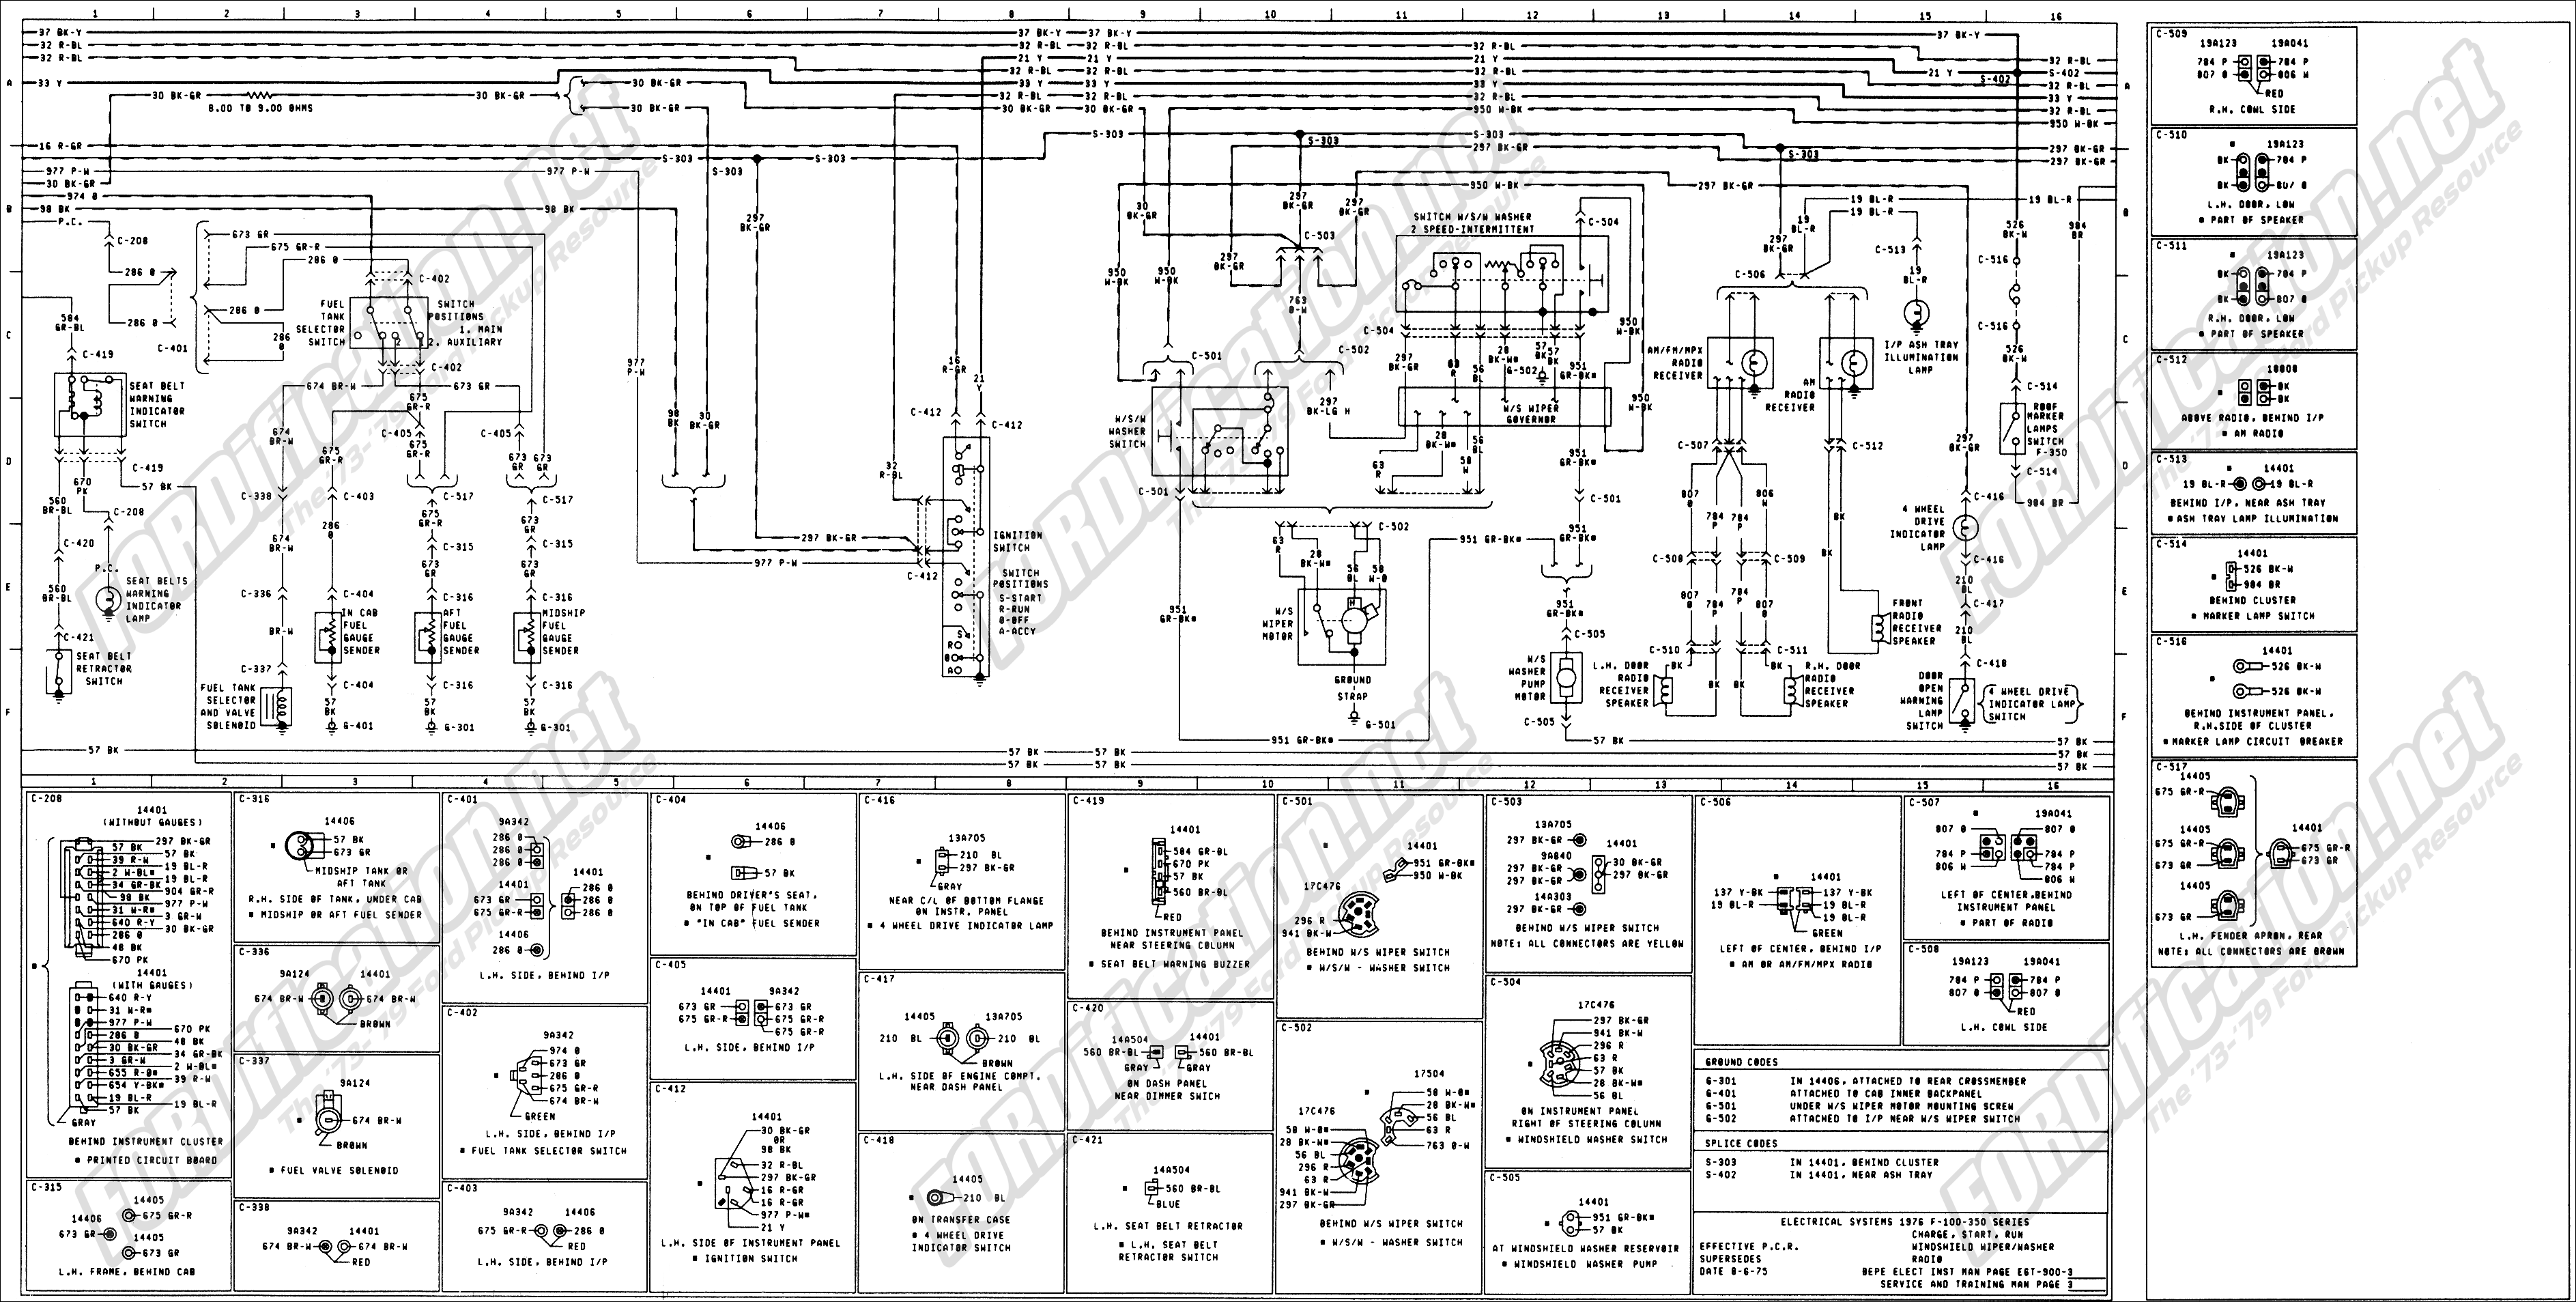 wiring_76master_3of9 1973 1979 ford truck wiring diagrams & schematics fordification net 1977 Ford F-250 Fuse Box Diagram at mifinder.co